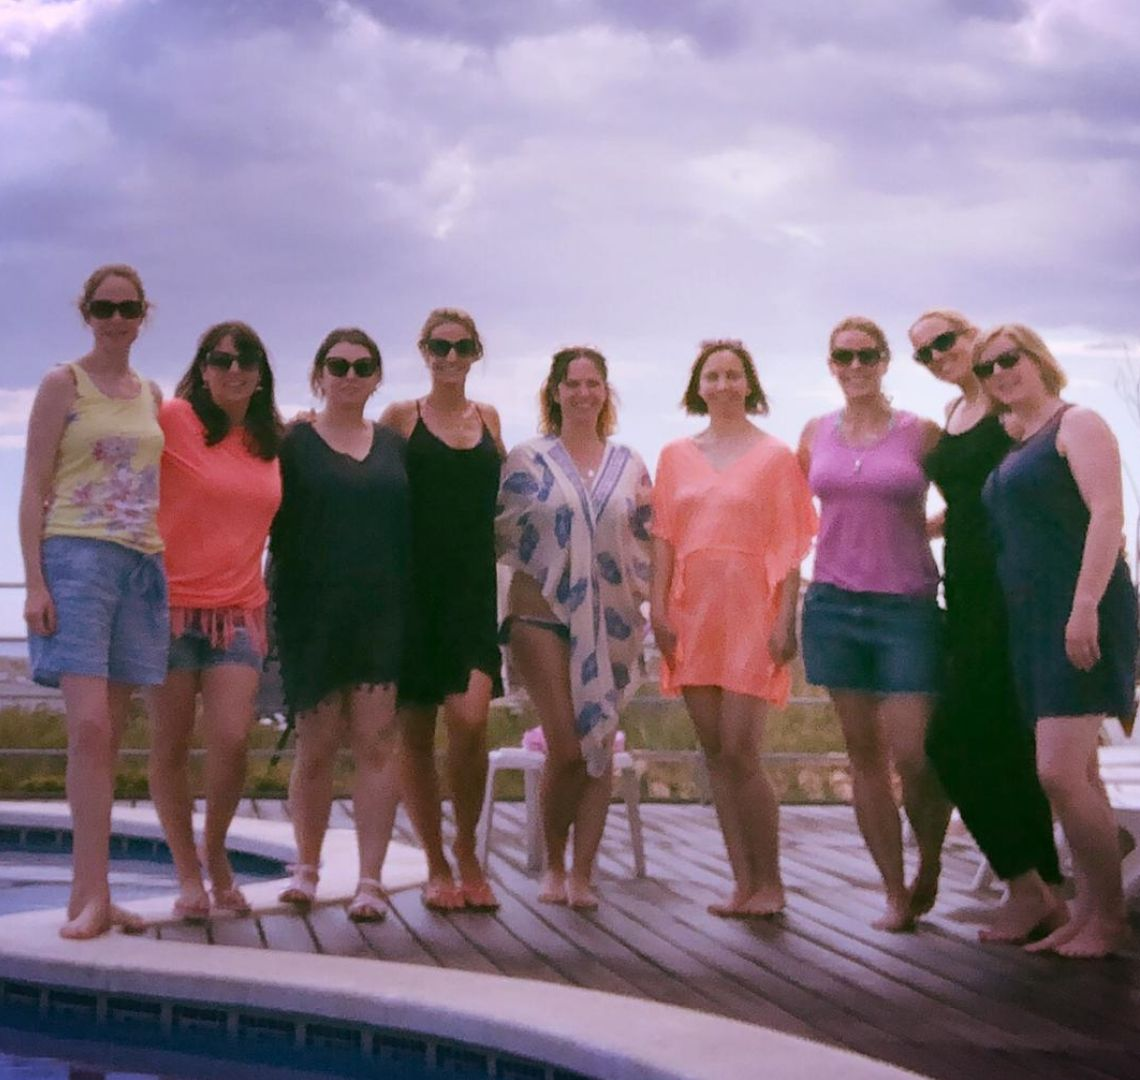 My girls - me and my 9 friends in a grainy image by the pool. I feel it represents us perfectly!